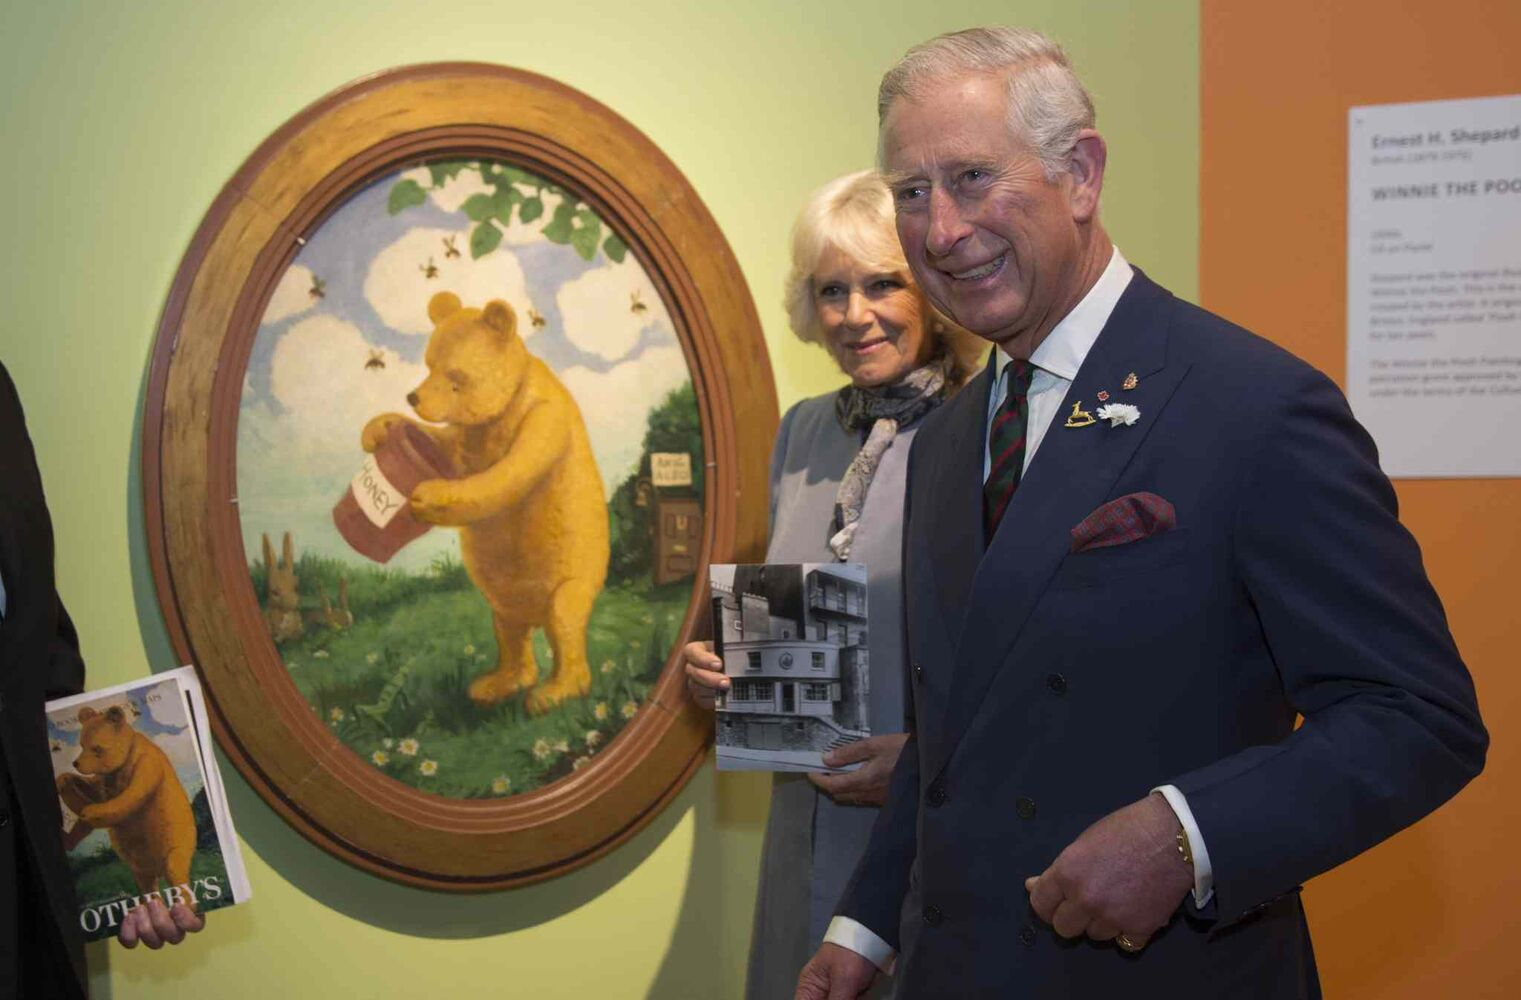 Prince Charles and his wife Camilla at the Pooh Gallery, which houses a collection of Winnie the Pooh artifacts and memorabilia, including the first painting of Winnie the Pooh by E.H. Shepherd,  (Paul Chiasson / The Canadian Press)